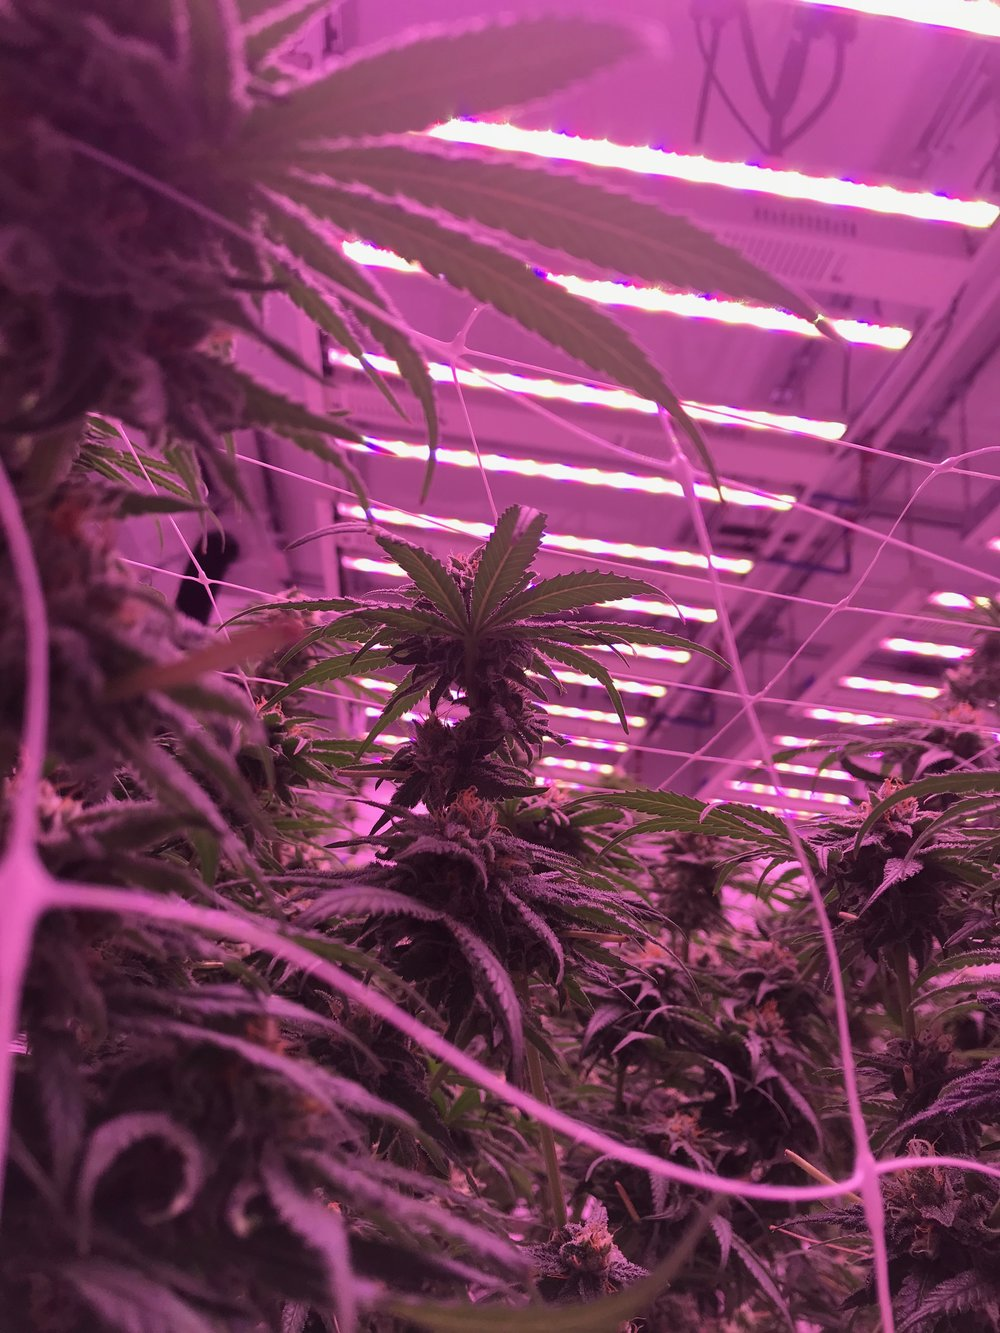 Work With Us - Make your dream of operating your own dispensary become a reality. For a free tour of our state-of-the art cultivation facility and information on how to work with Revolutionary Clinics, contact us.With your passion, and our real estate, capital, and product, we know that it won't just be cannabis we'll be growing.